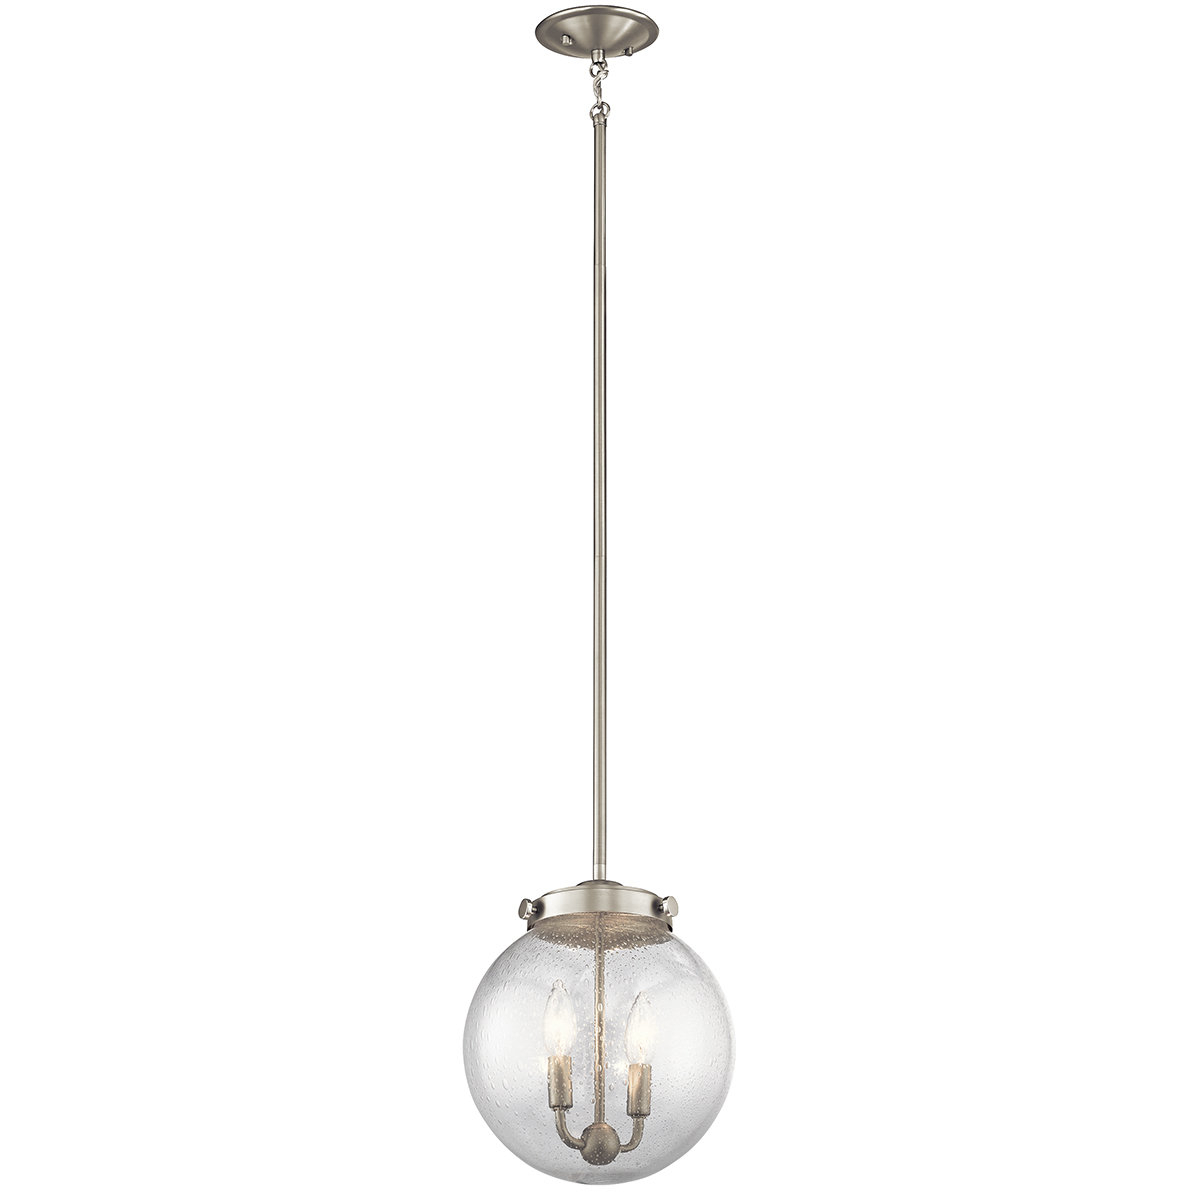 Adamell 1 Light Single Globe Pendant Pertaining To Cayden 1 Light Single Globe Pendants (View 1 of 30)